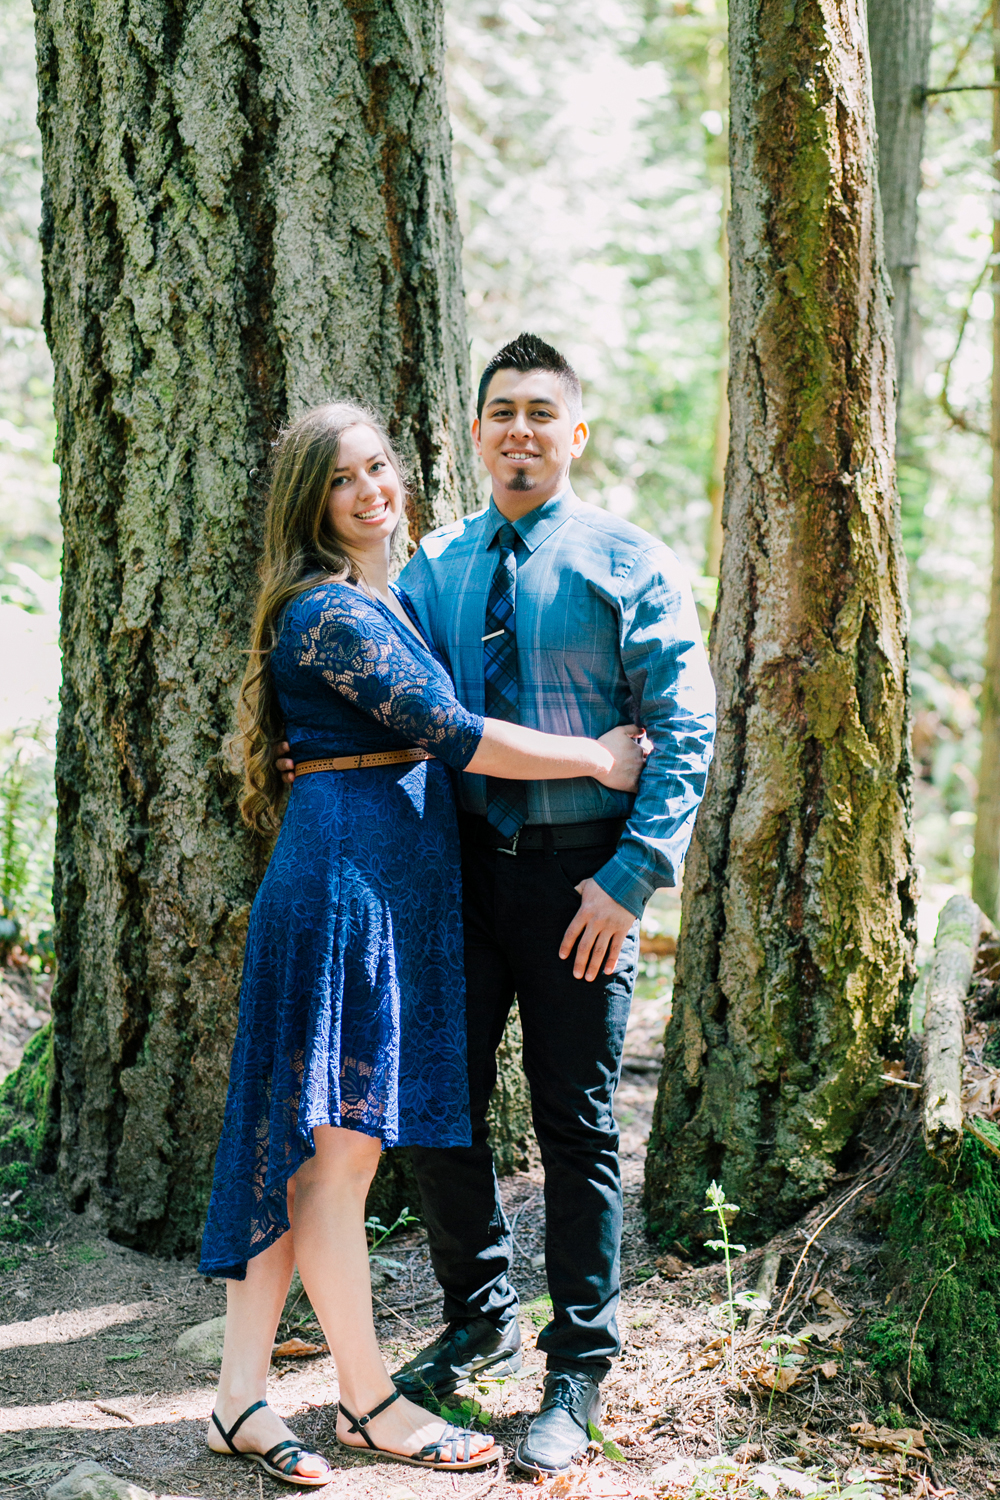 001-bellingham-engagement-wedding-photographer-katheryn-moran-chuckanut-drive-clayton-beach.jpg